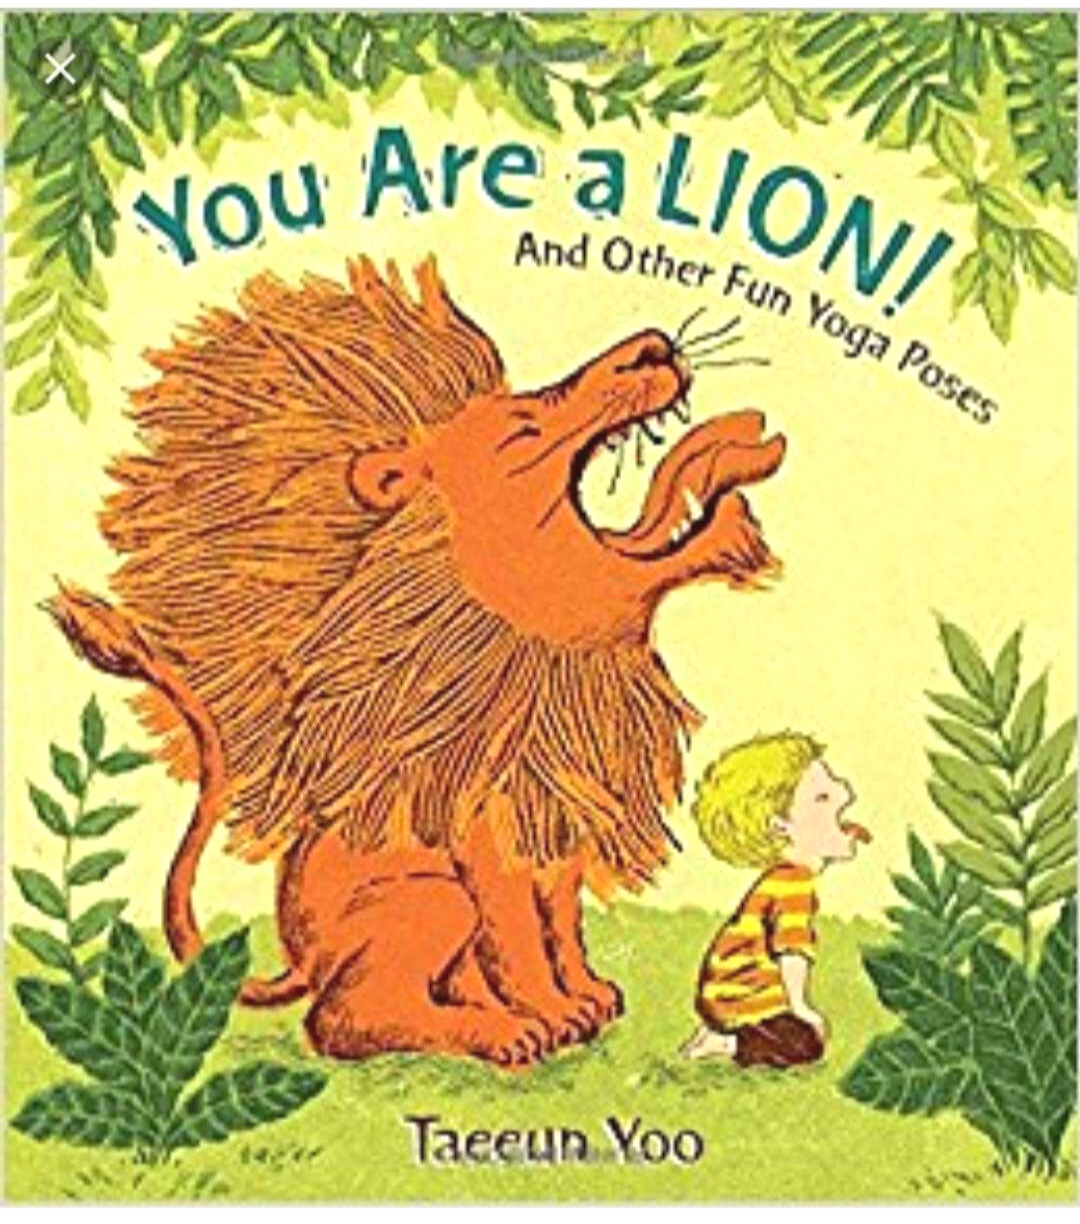 You Are a Lion - I love a good interactive book! This one goes though animal-like yoga poses step by step!